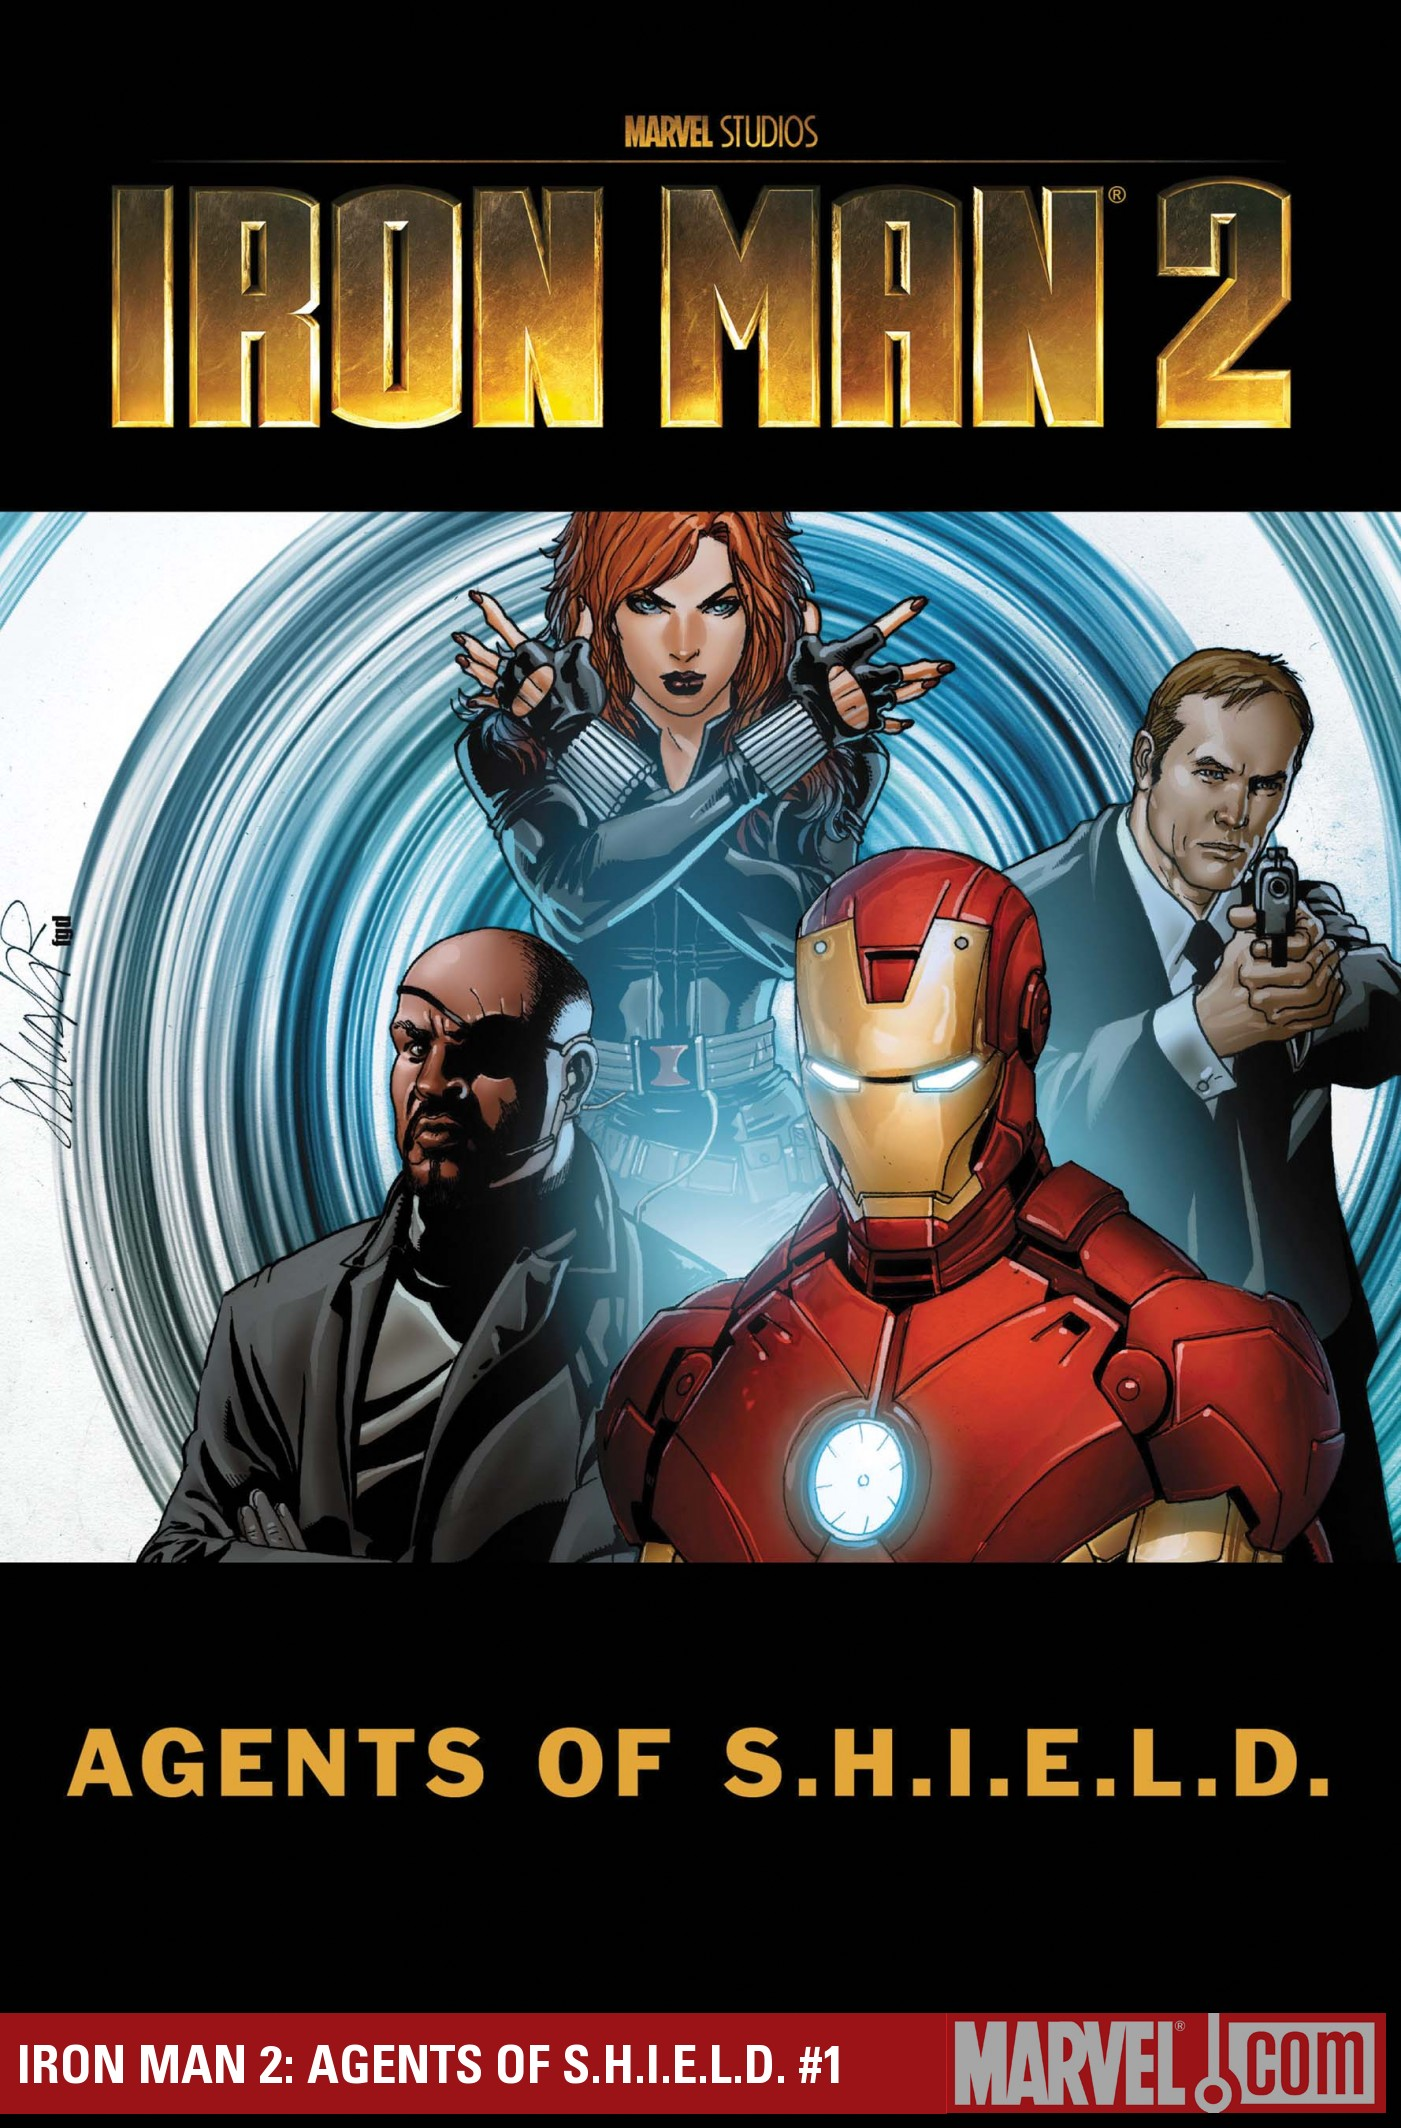 65_iron_man_2__agents_of_s_h_i_e_l_d__1